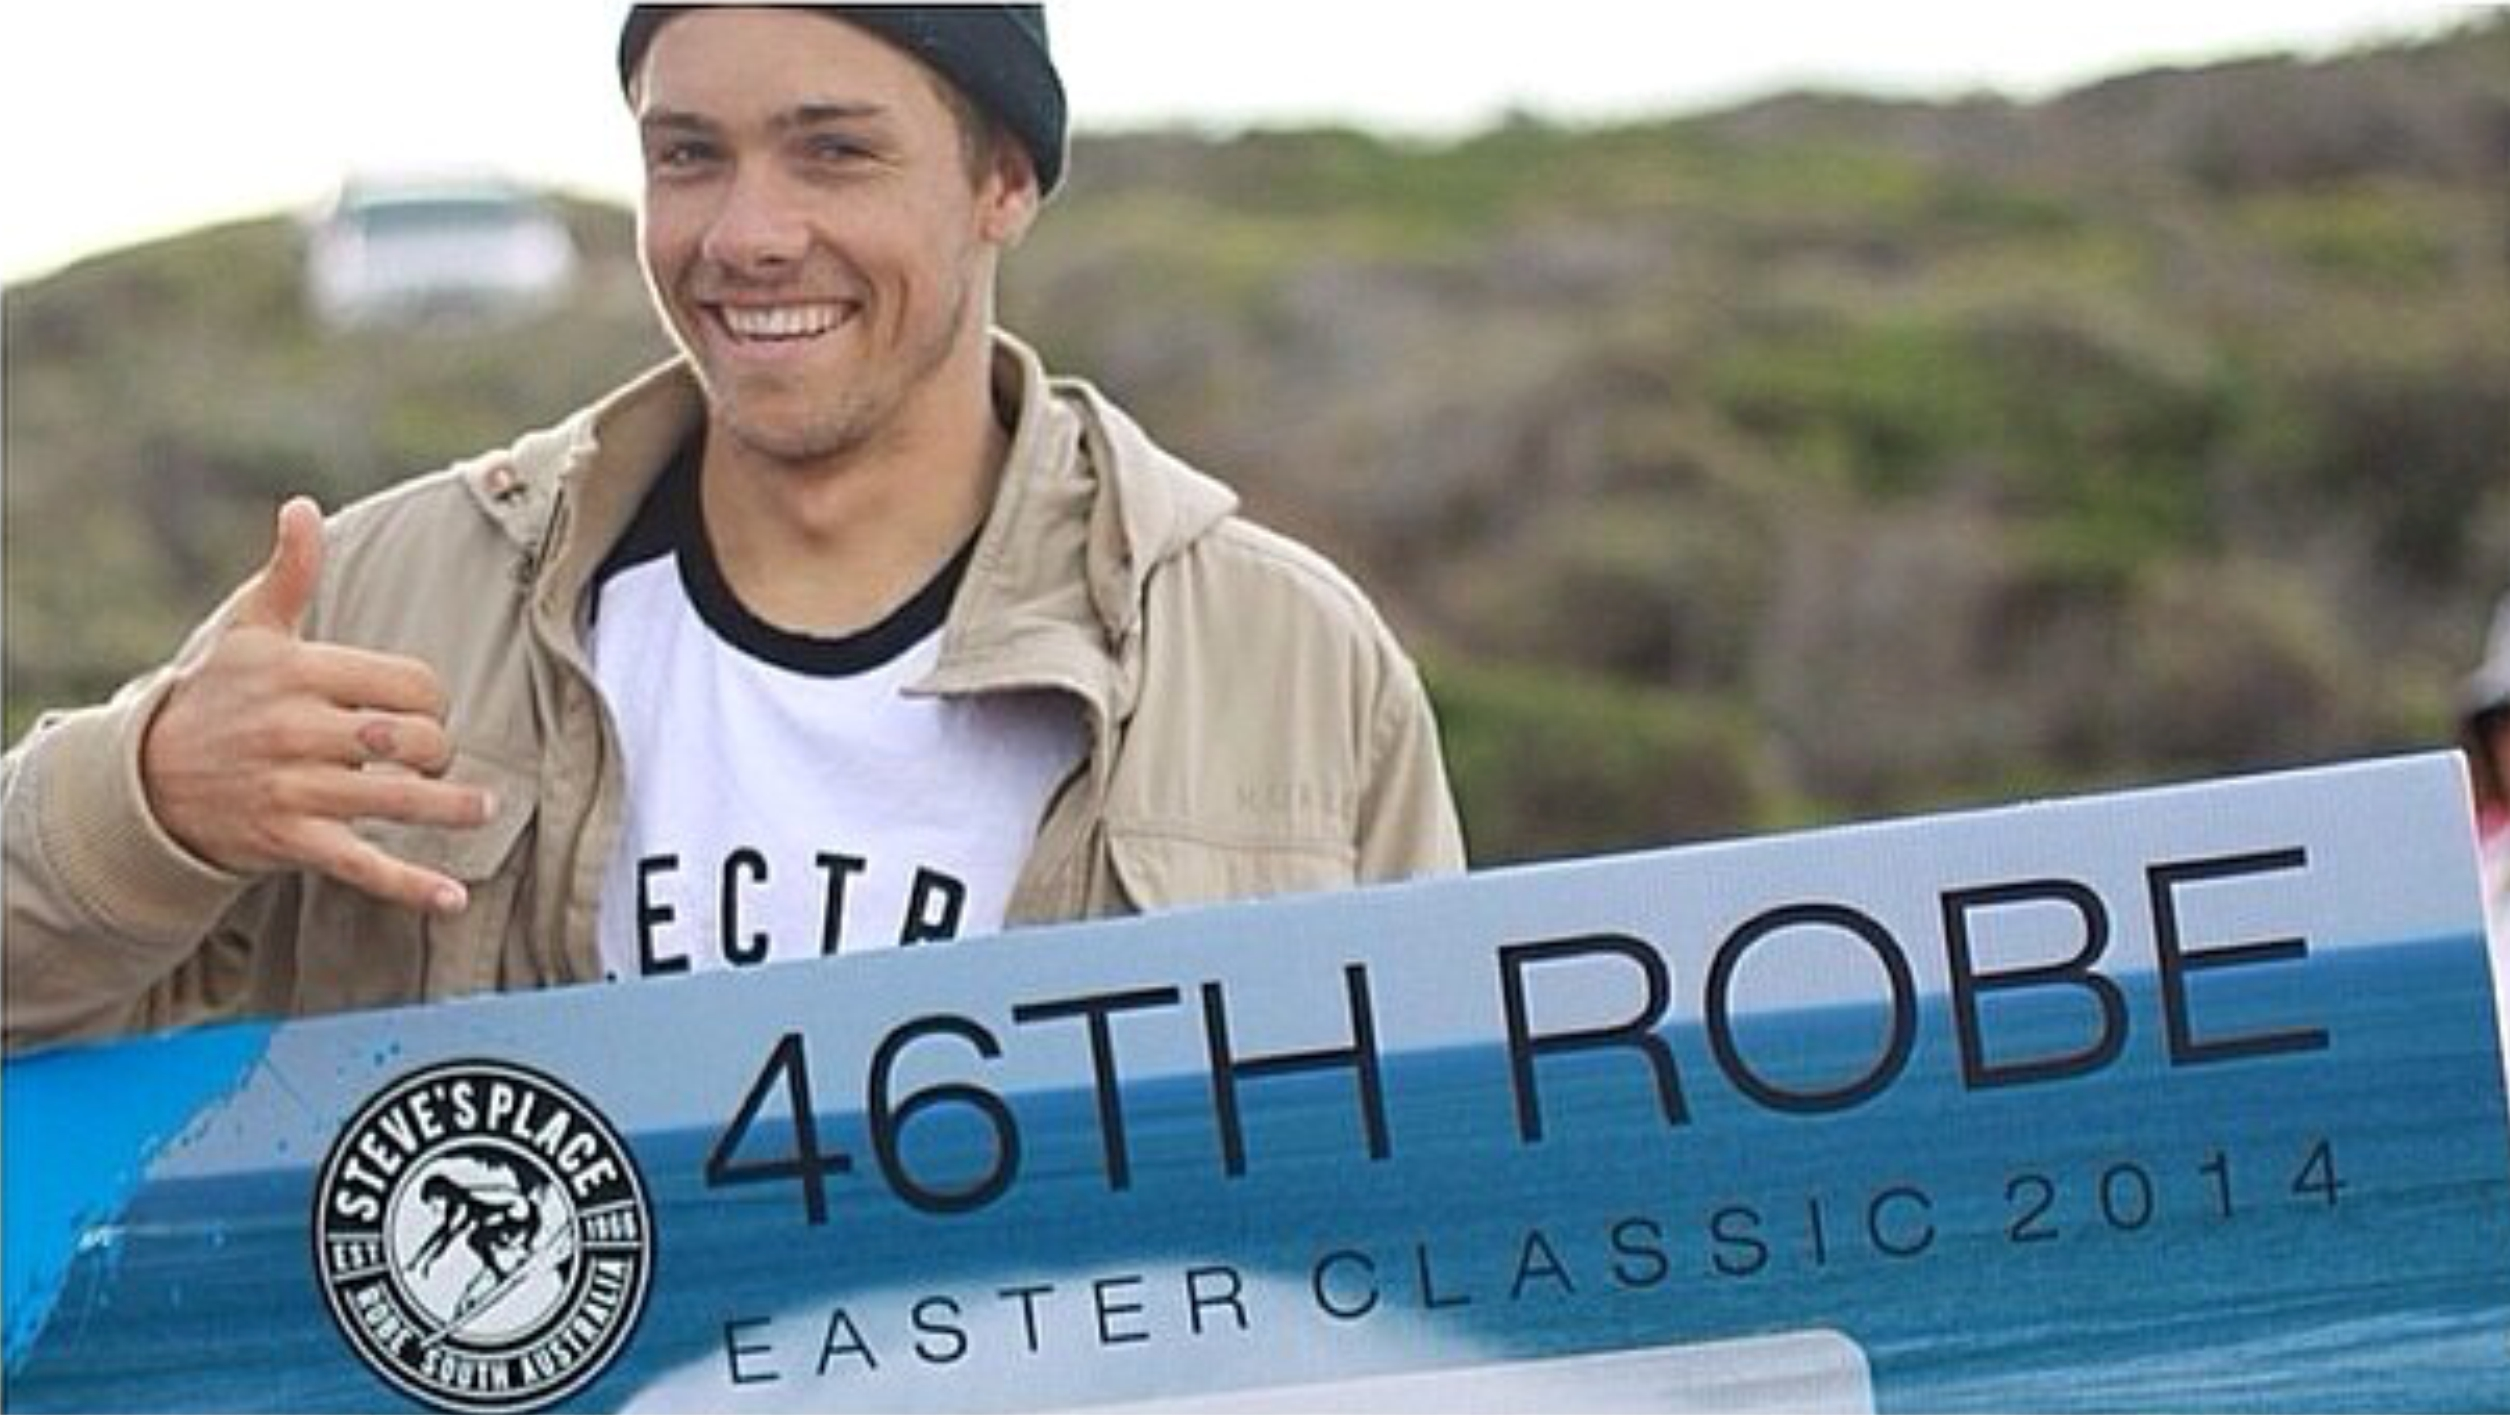 Robe Easter Classic Novelty Cheque